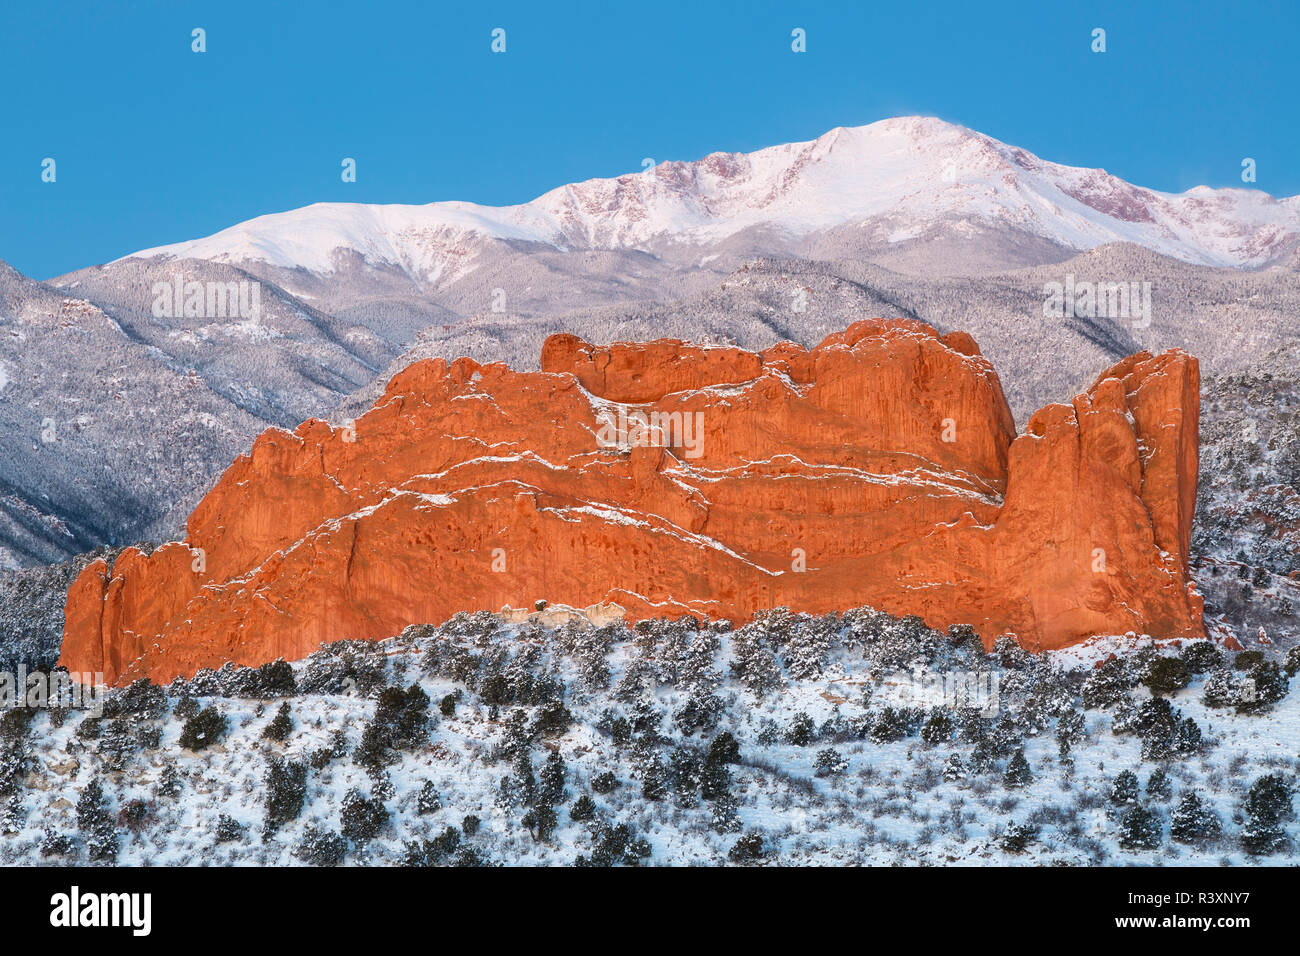 USA, Colorado, Colorado Springs. Pikes Peak and sandstone formation of Garden of the Gods. Credit as: Don Grall / Jaynes Gallery / DanitaDelimont. com - Stock Image